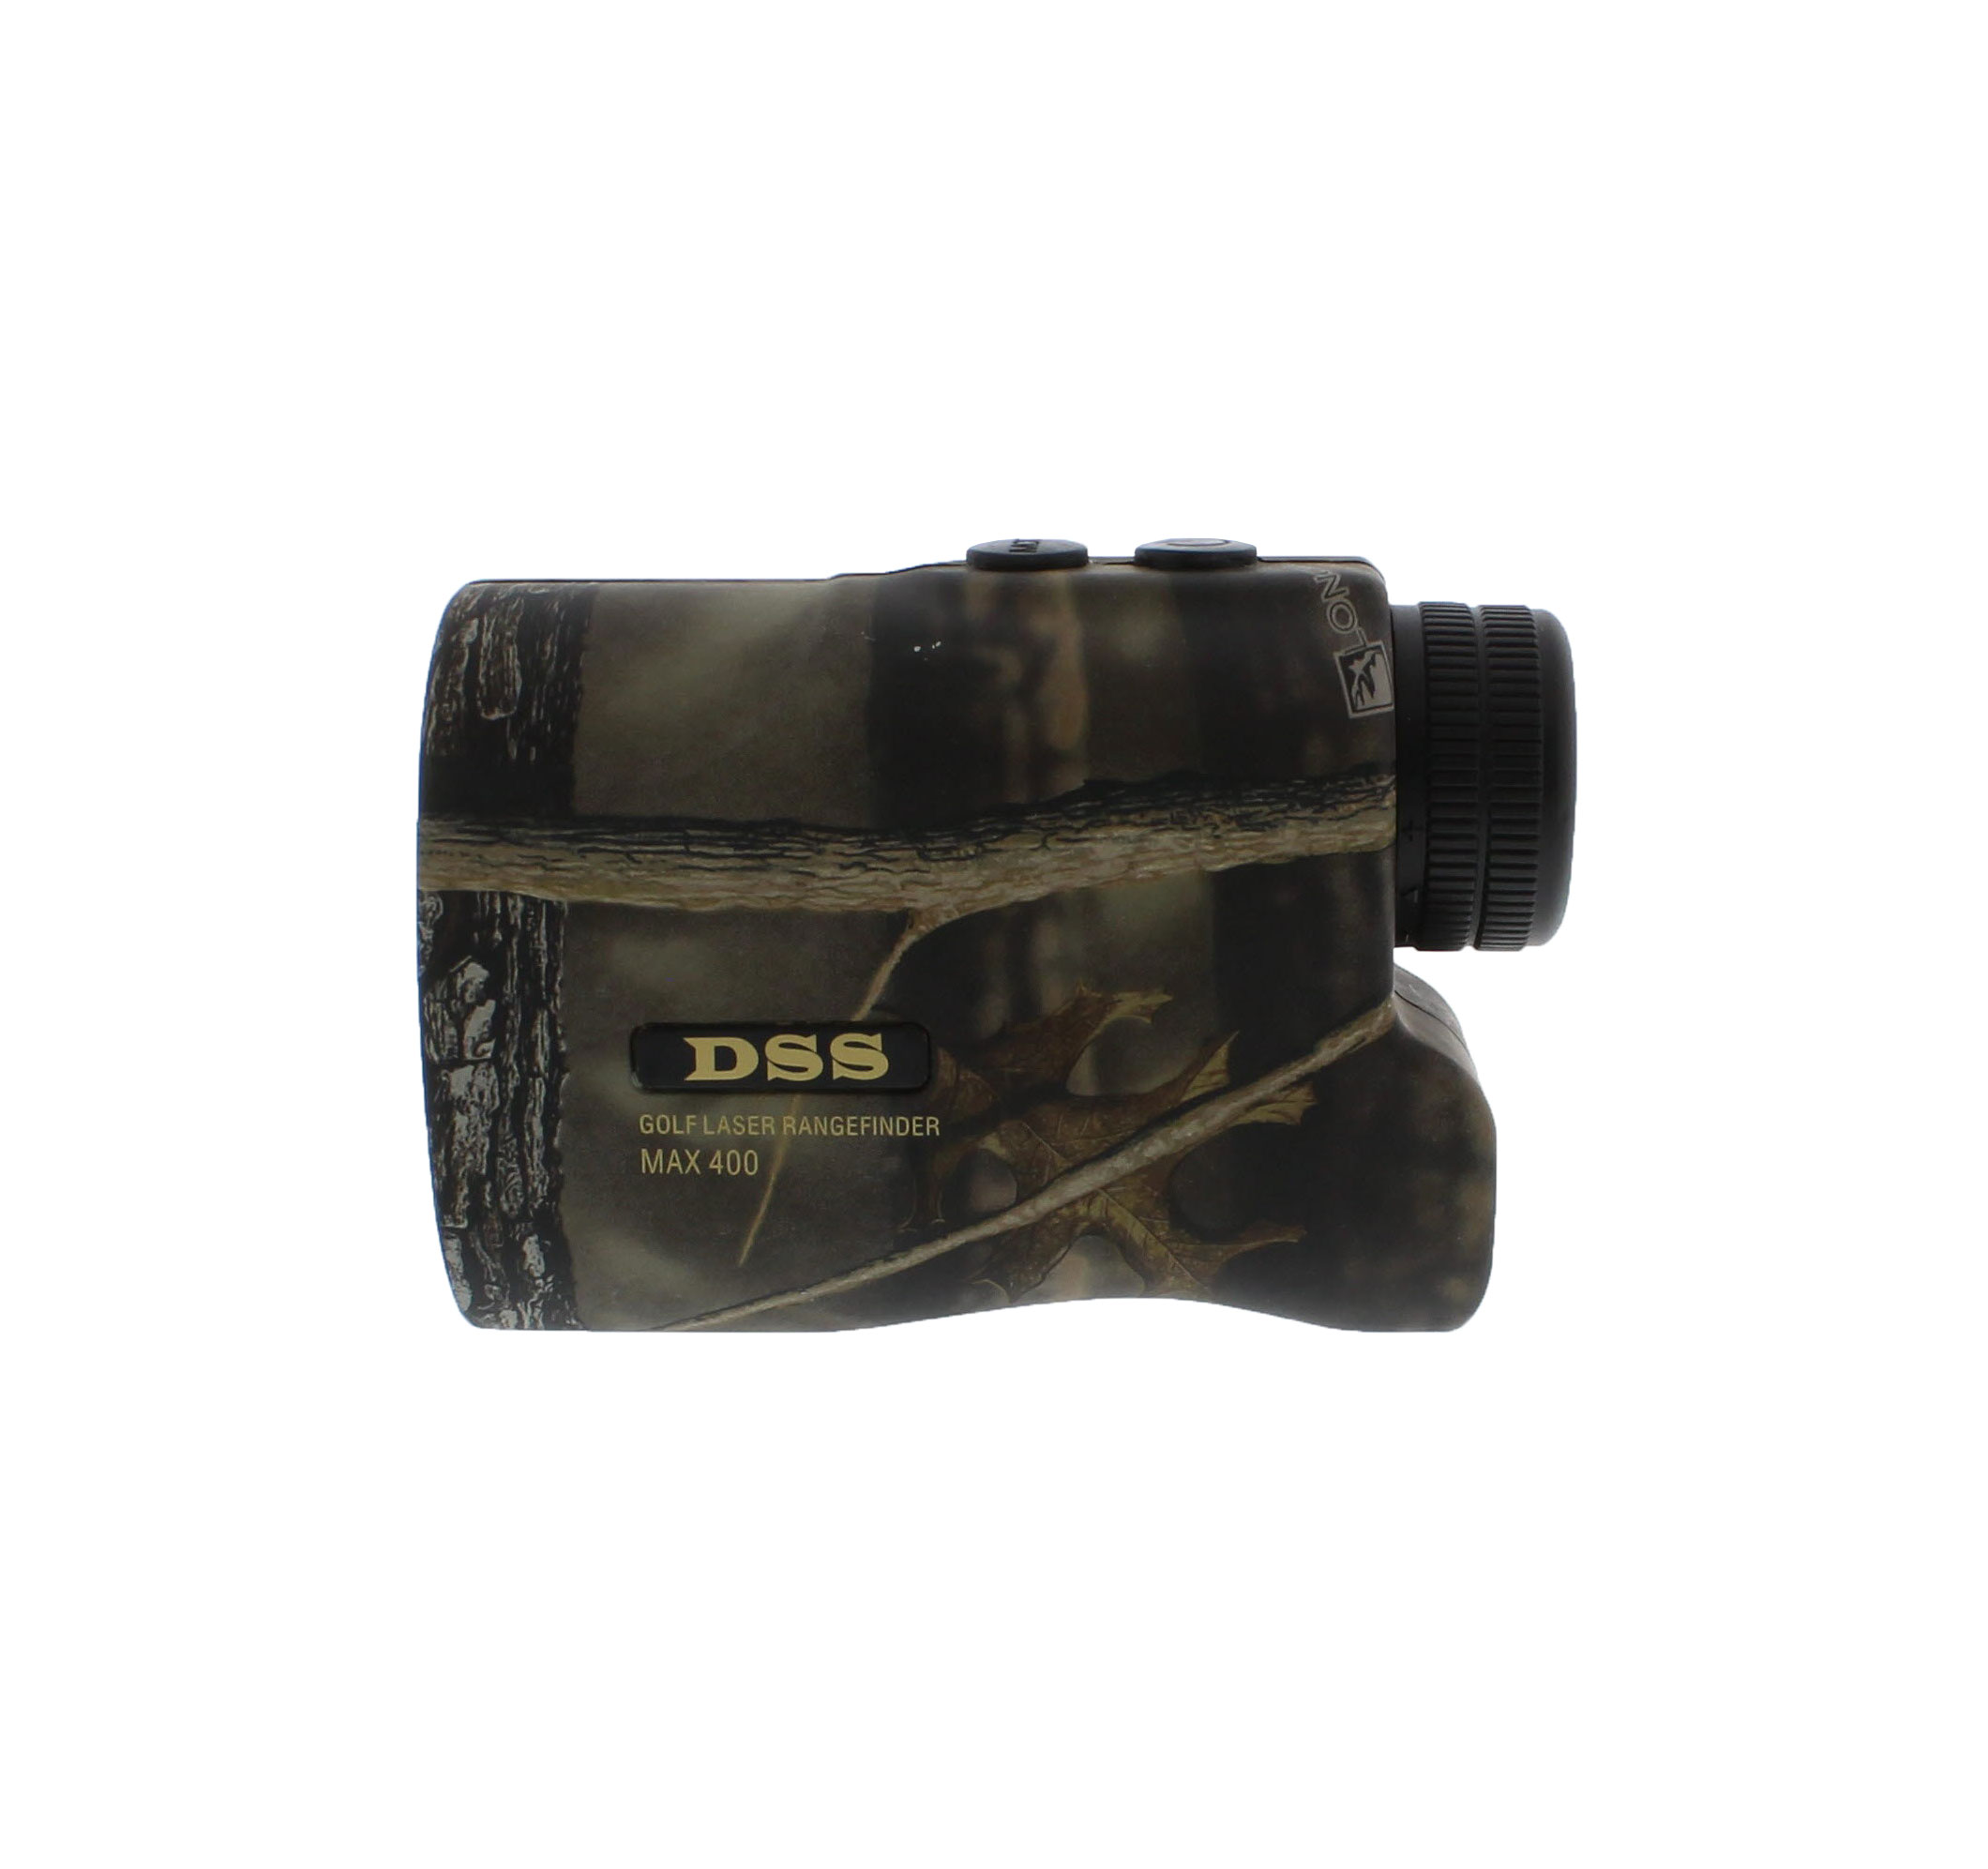 DSS 9265 Golf and Hunting Laser Rangefinder up to 450 Yards, in Woodland Camo by Auto Body Now